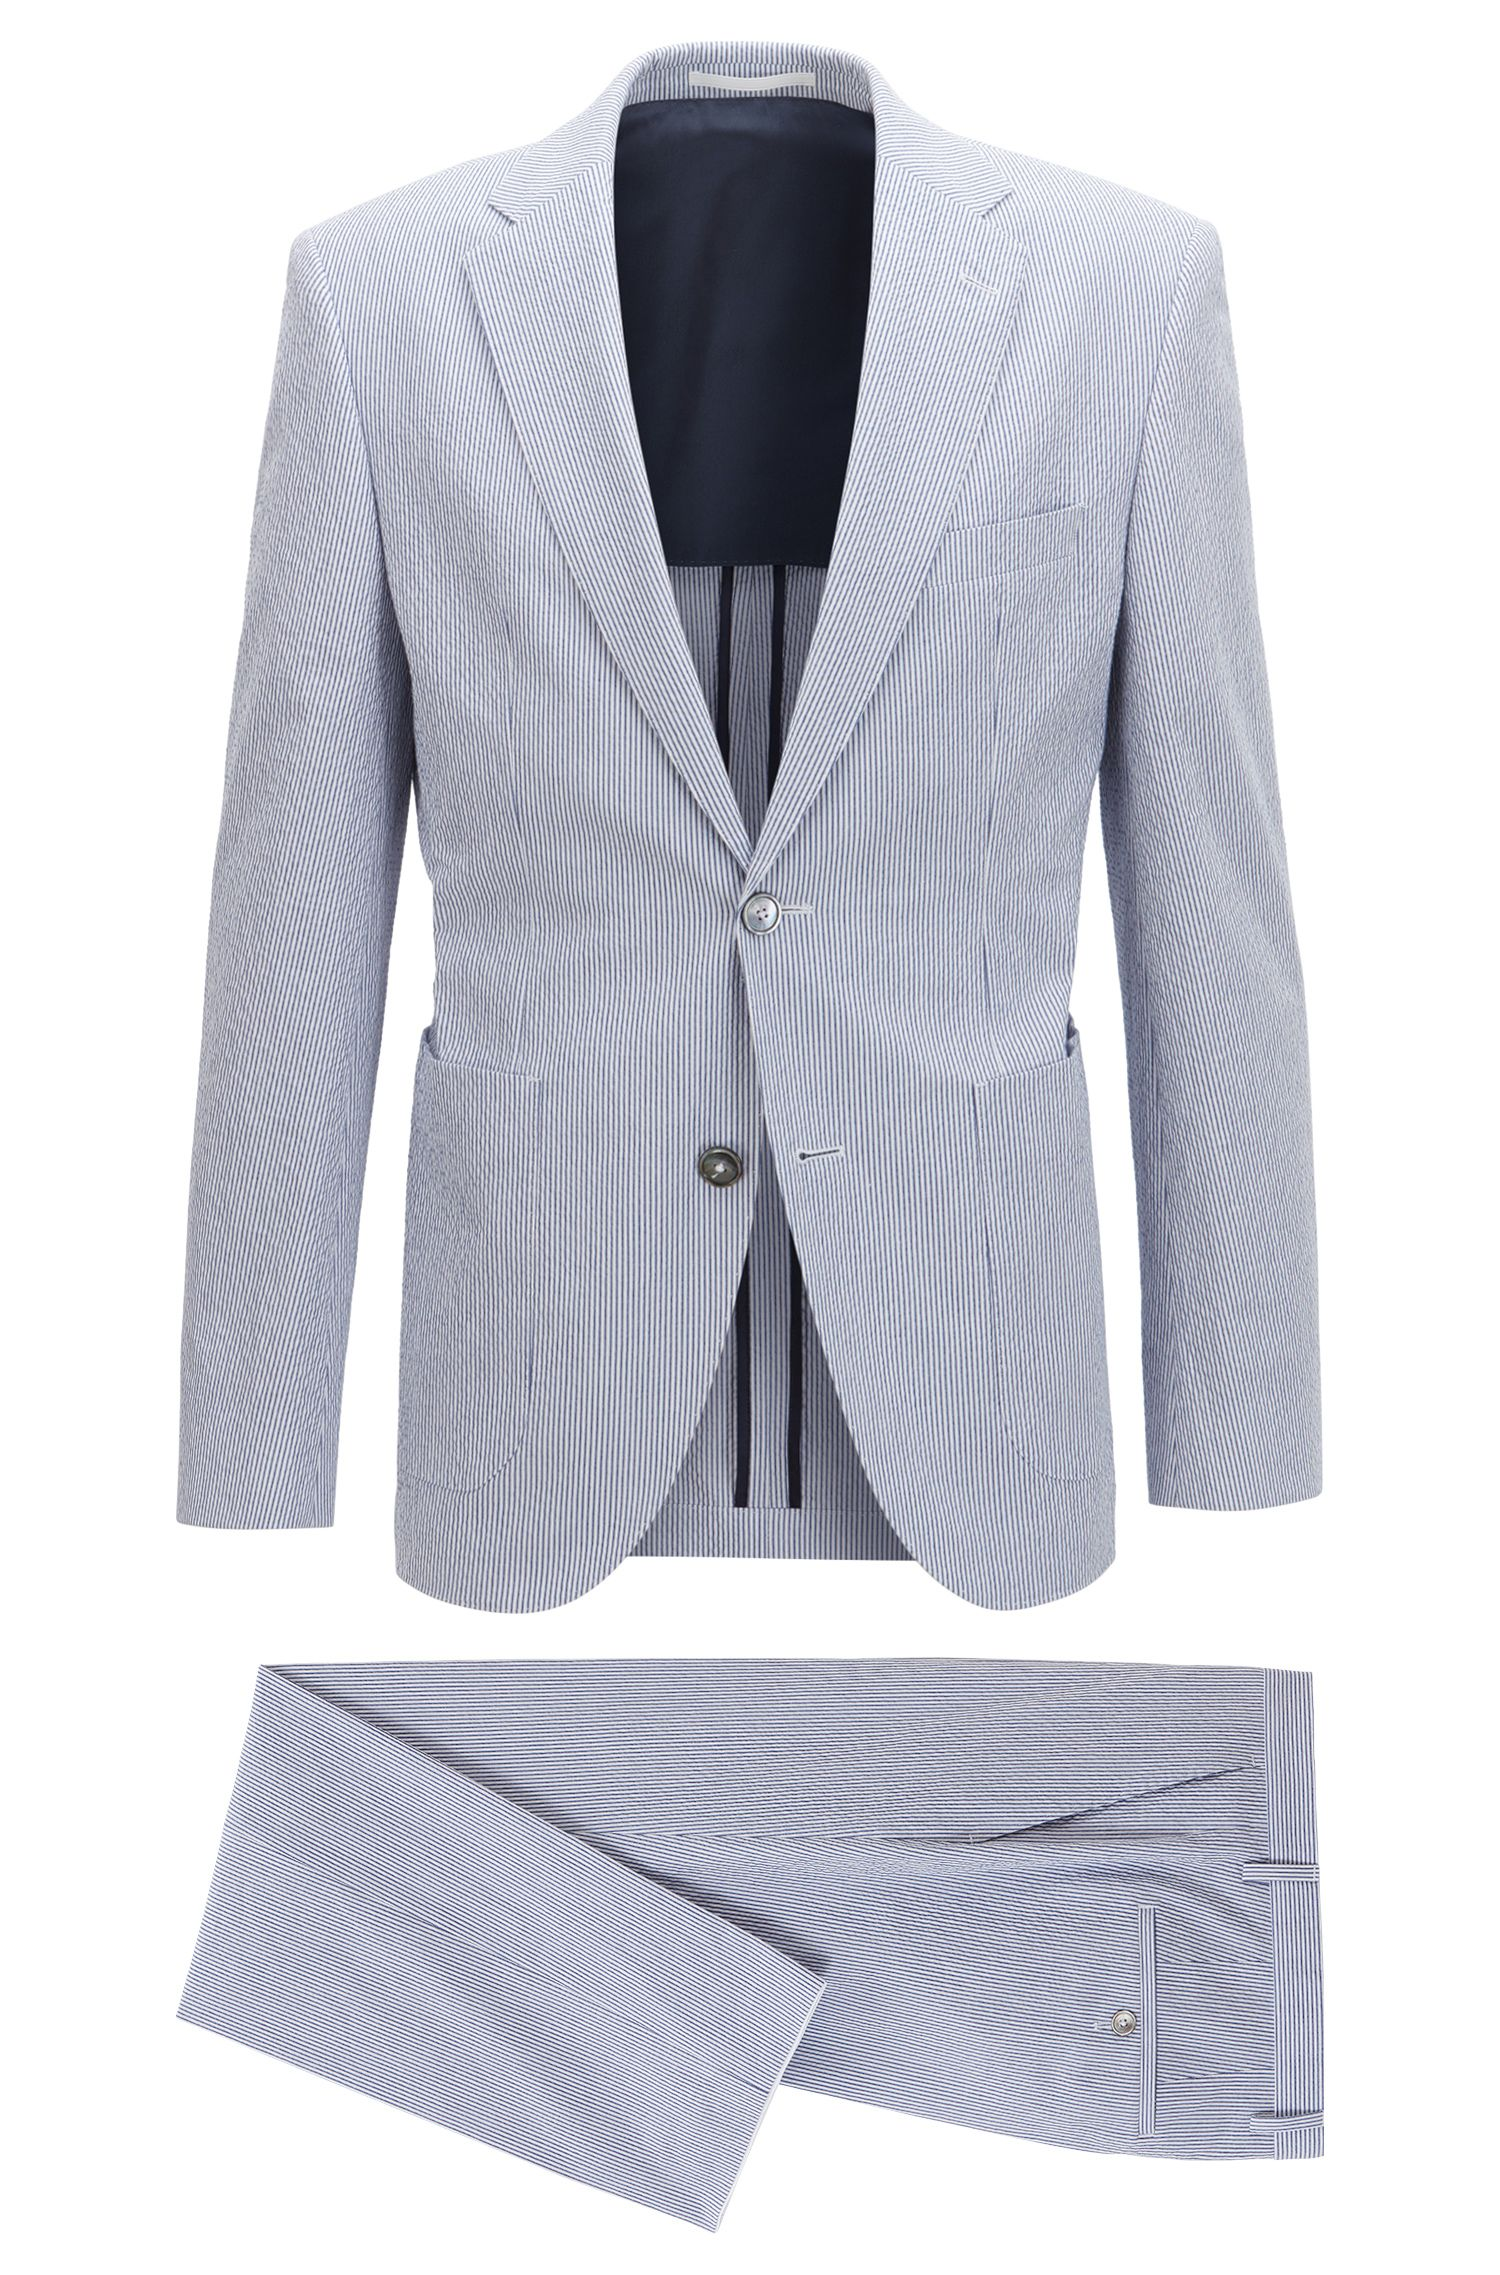 Striped stretch-cotton seersucker suit in a regular fit